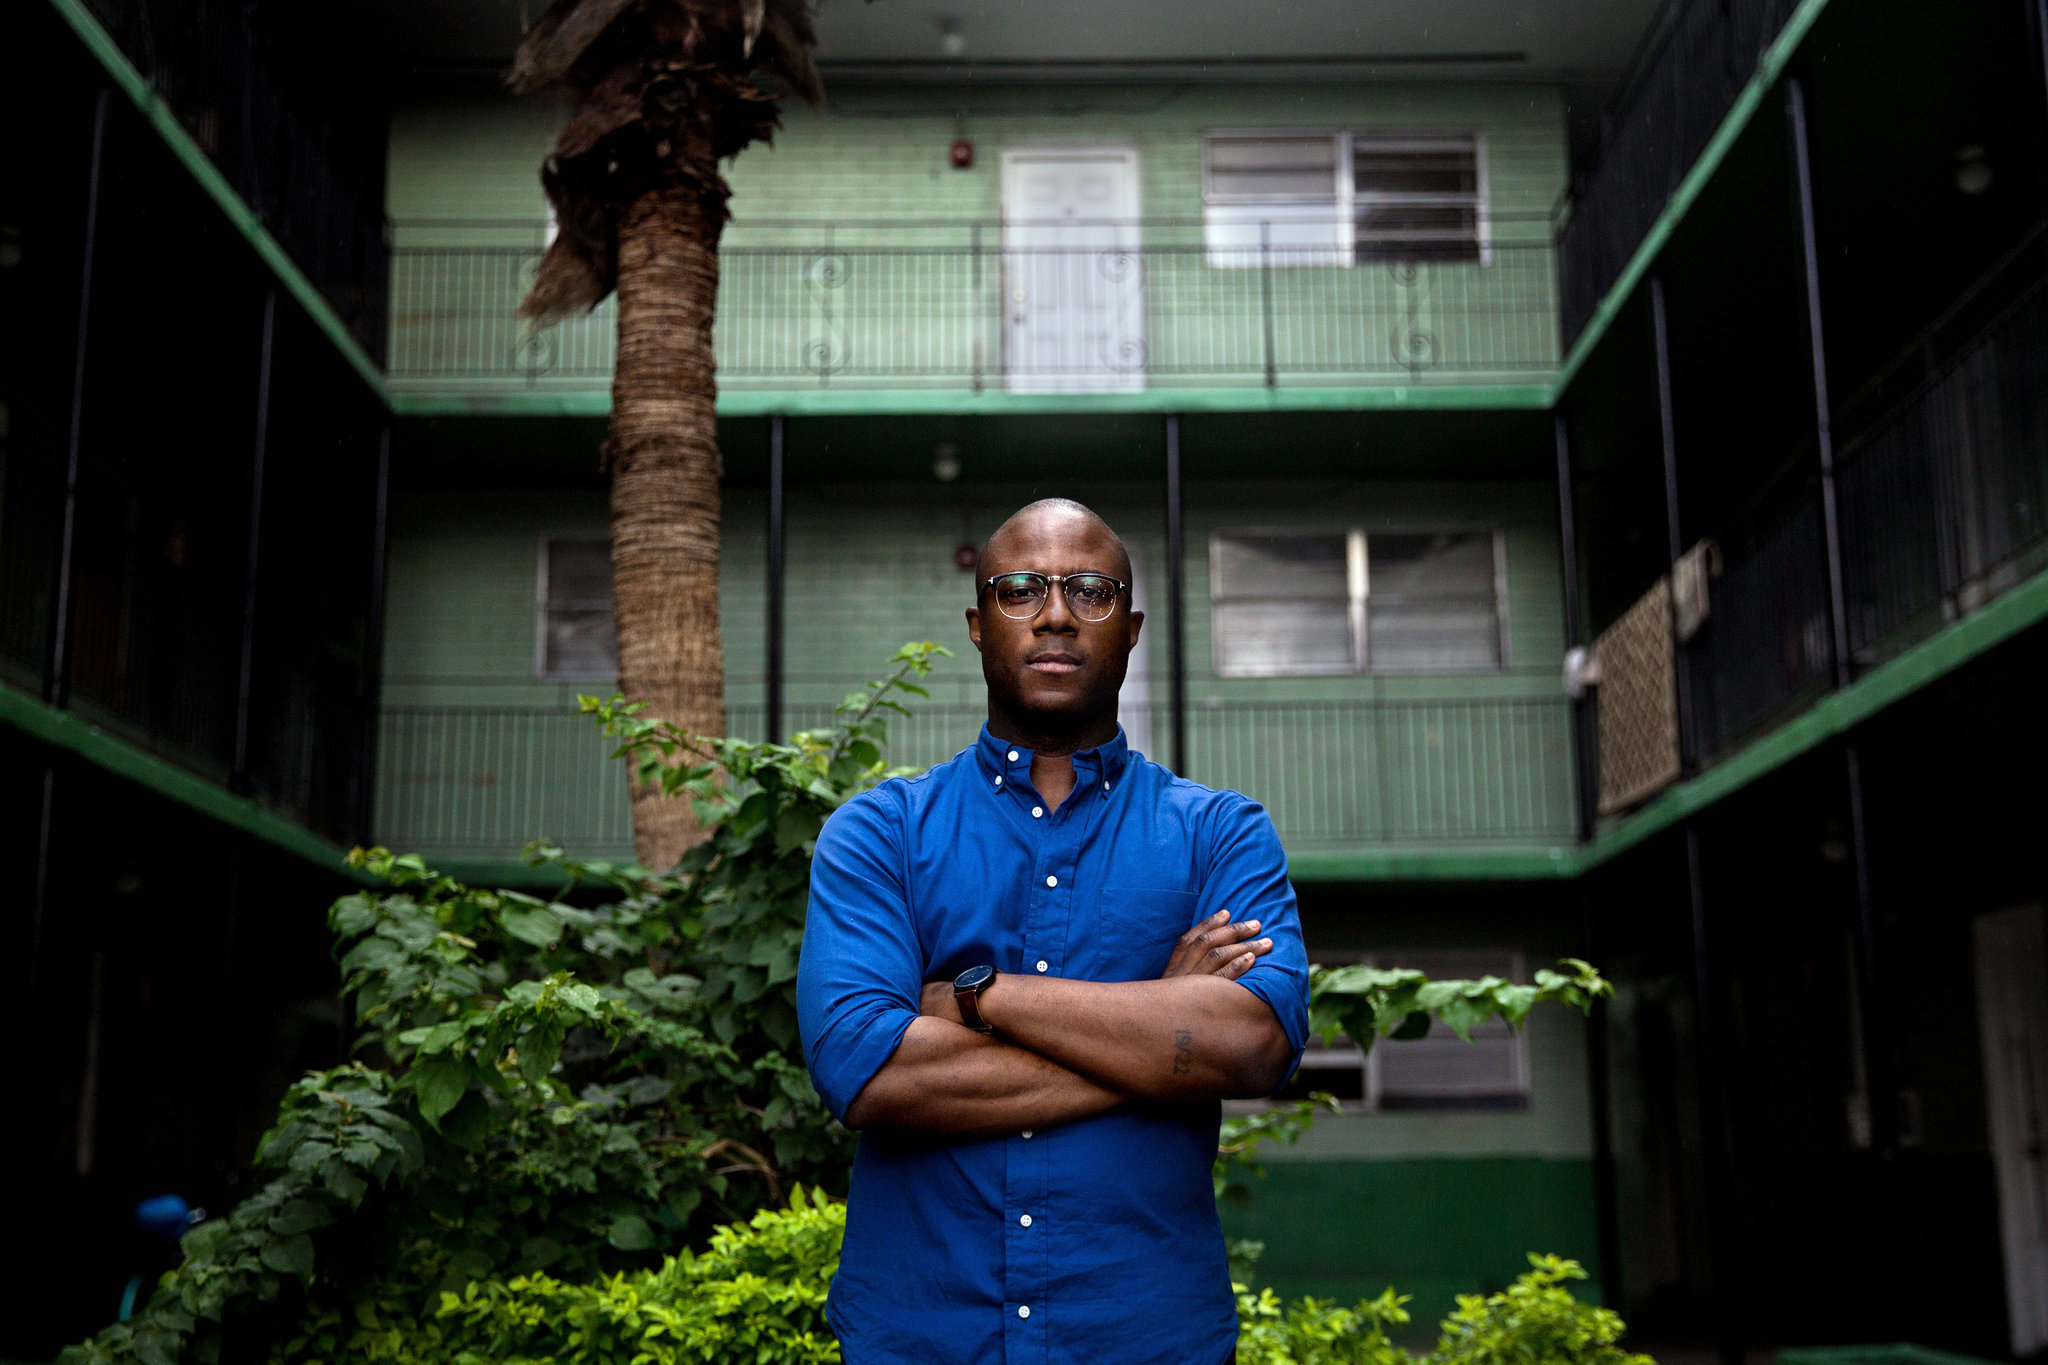 Barry Jenkins Credit Scott McIntyre for The New York Times